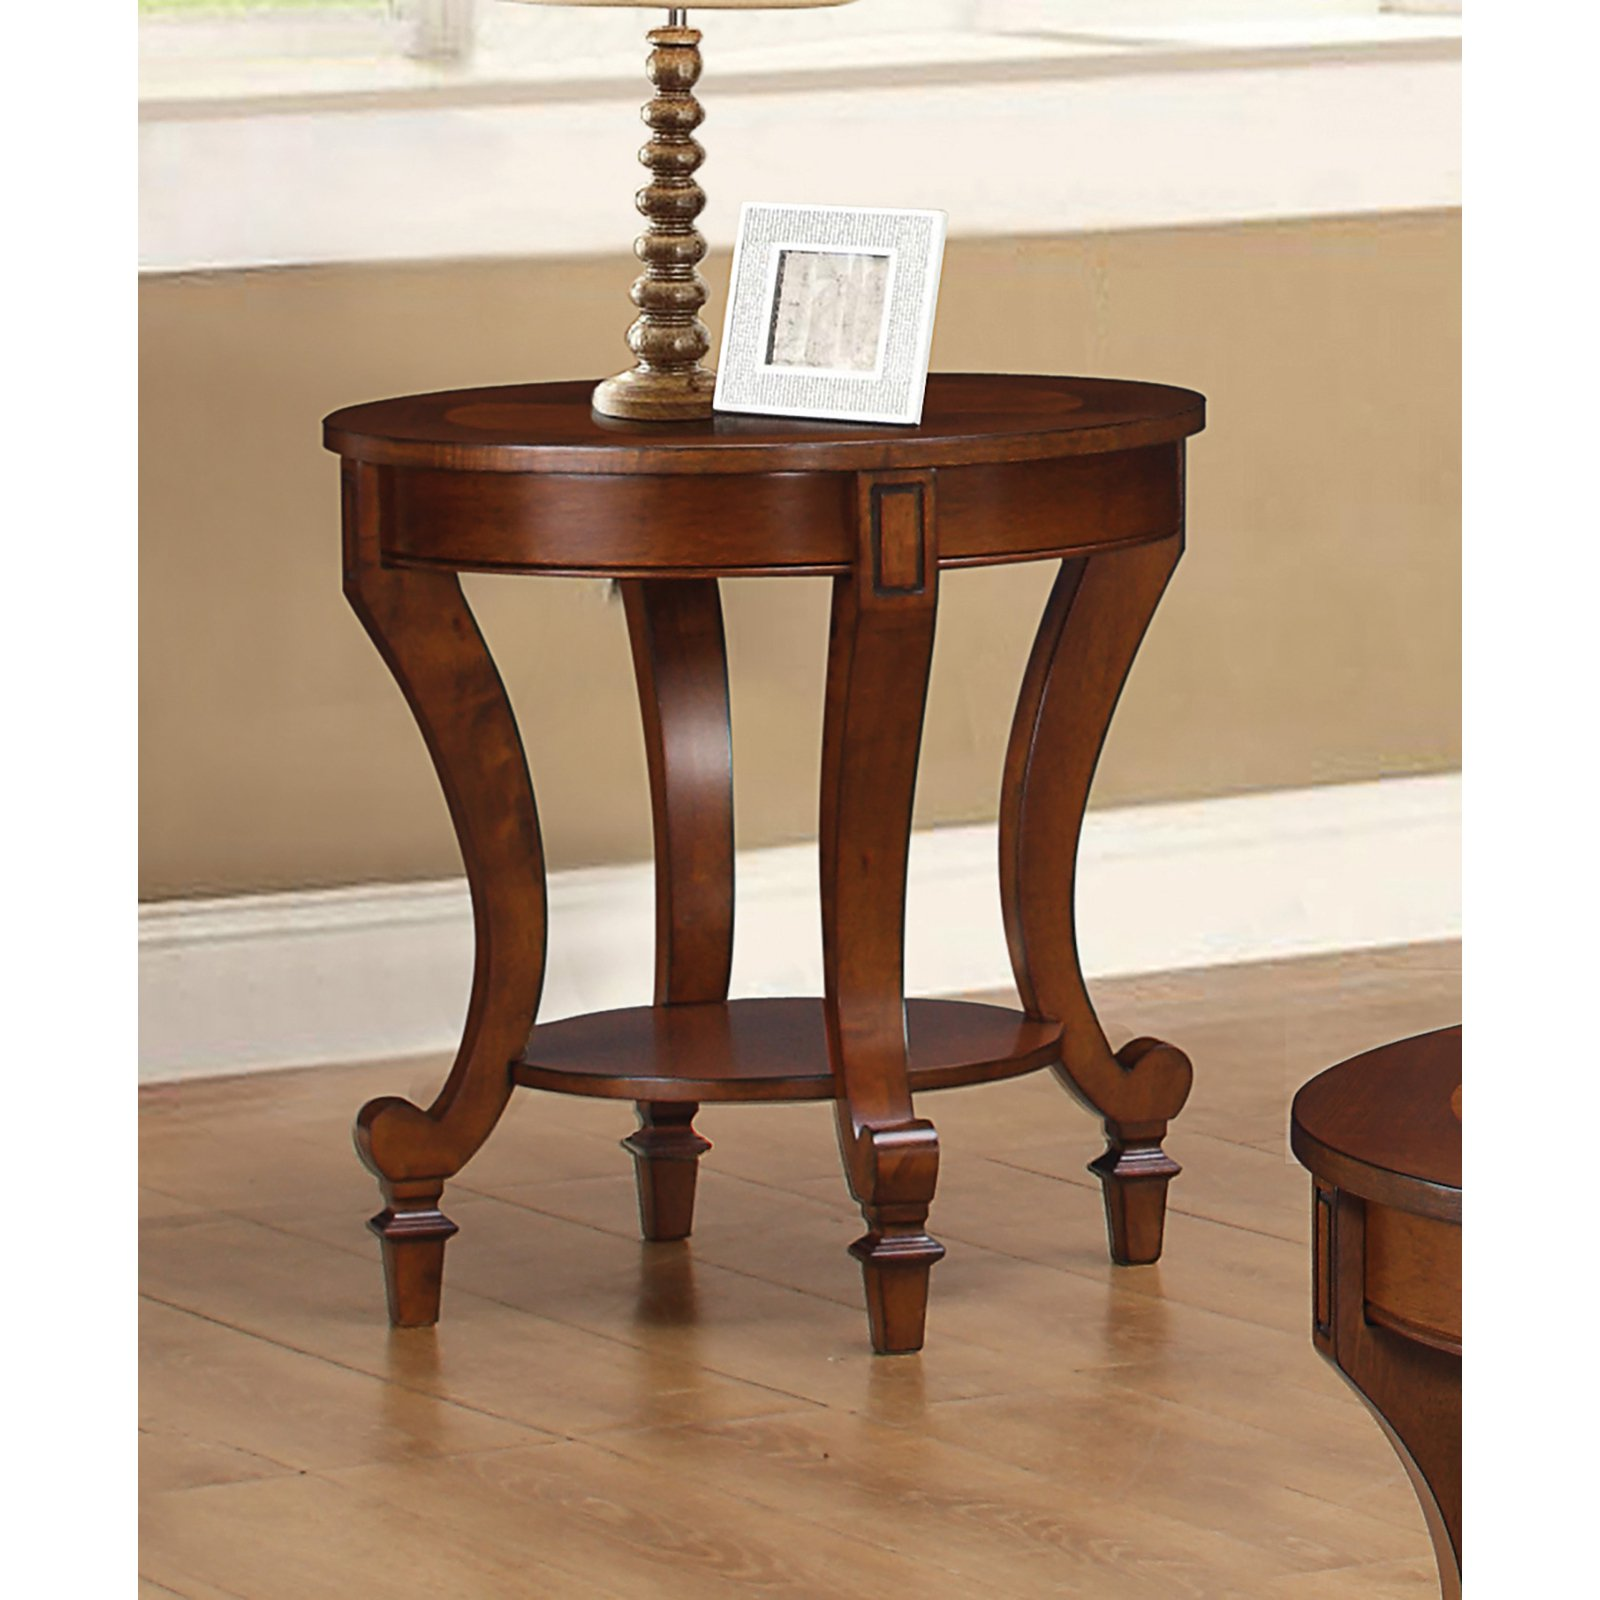 Coaster Company End Table, Warm Brown